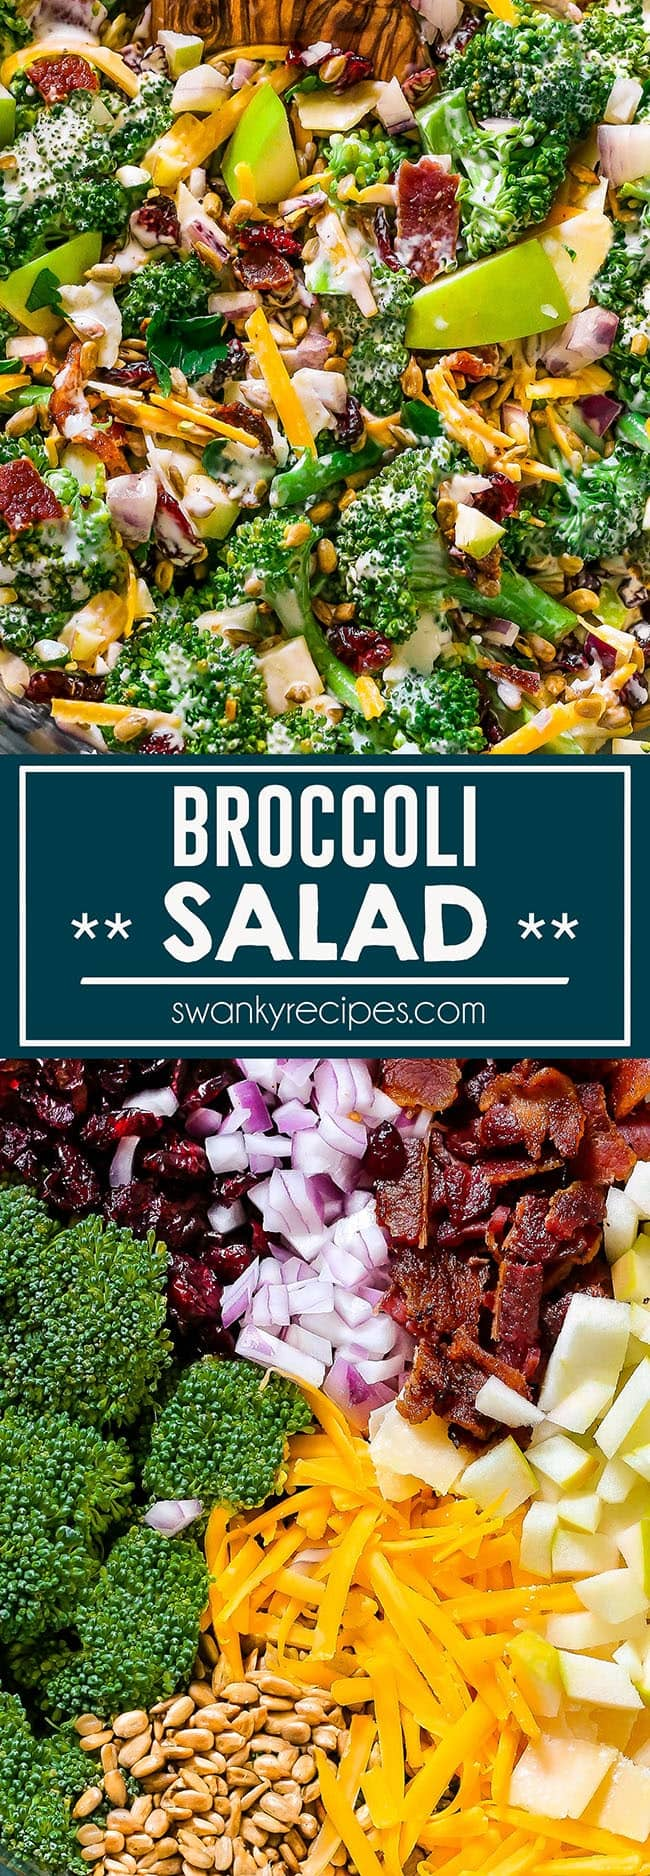 Broccoli Salad - The BEST broccoli salad recipe with healthy, fresh ingredients.